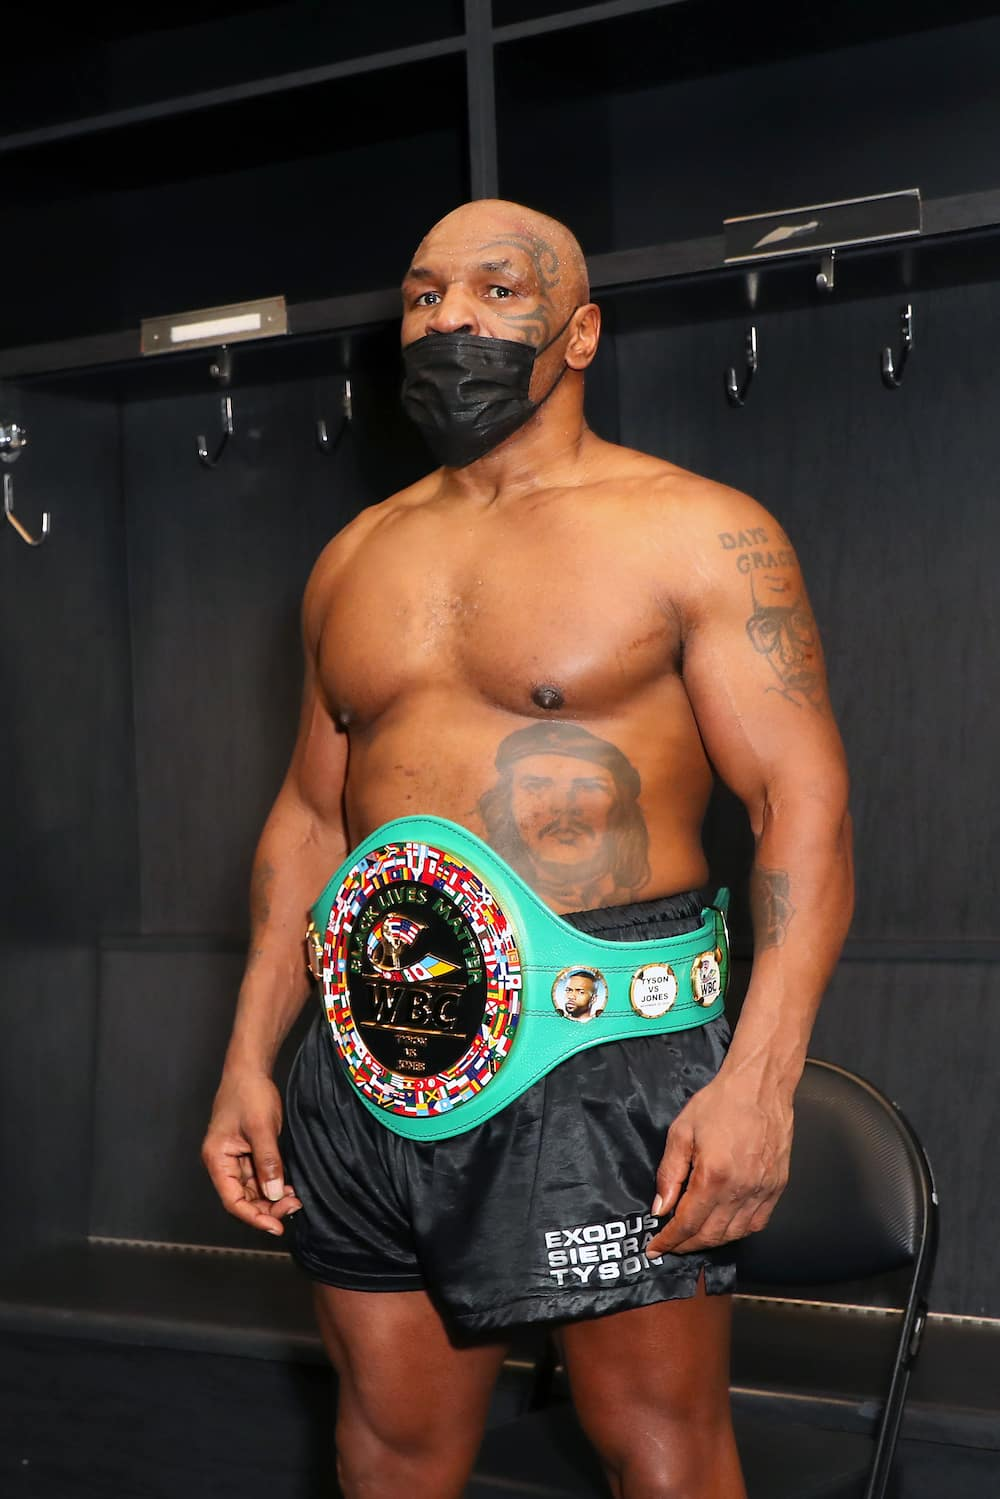 Mike Tyson vs Jones Jr exhibition fight got over 1.2m pay per view buys